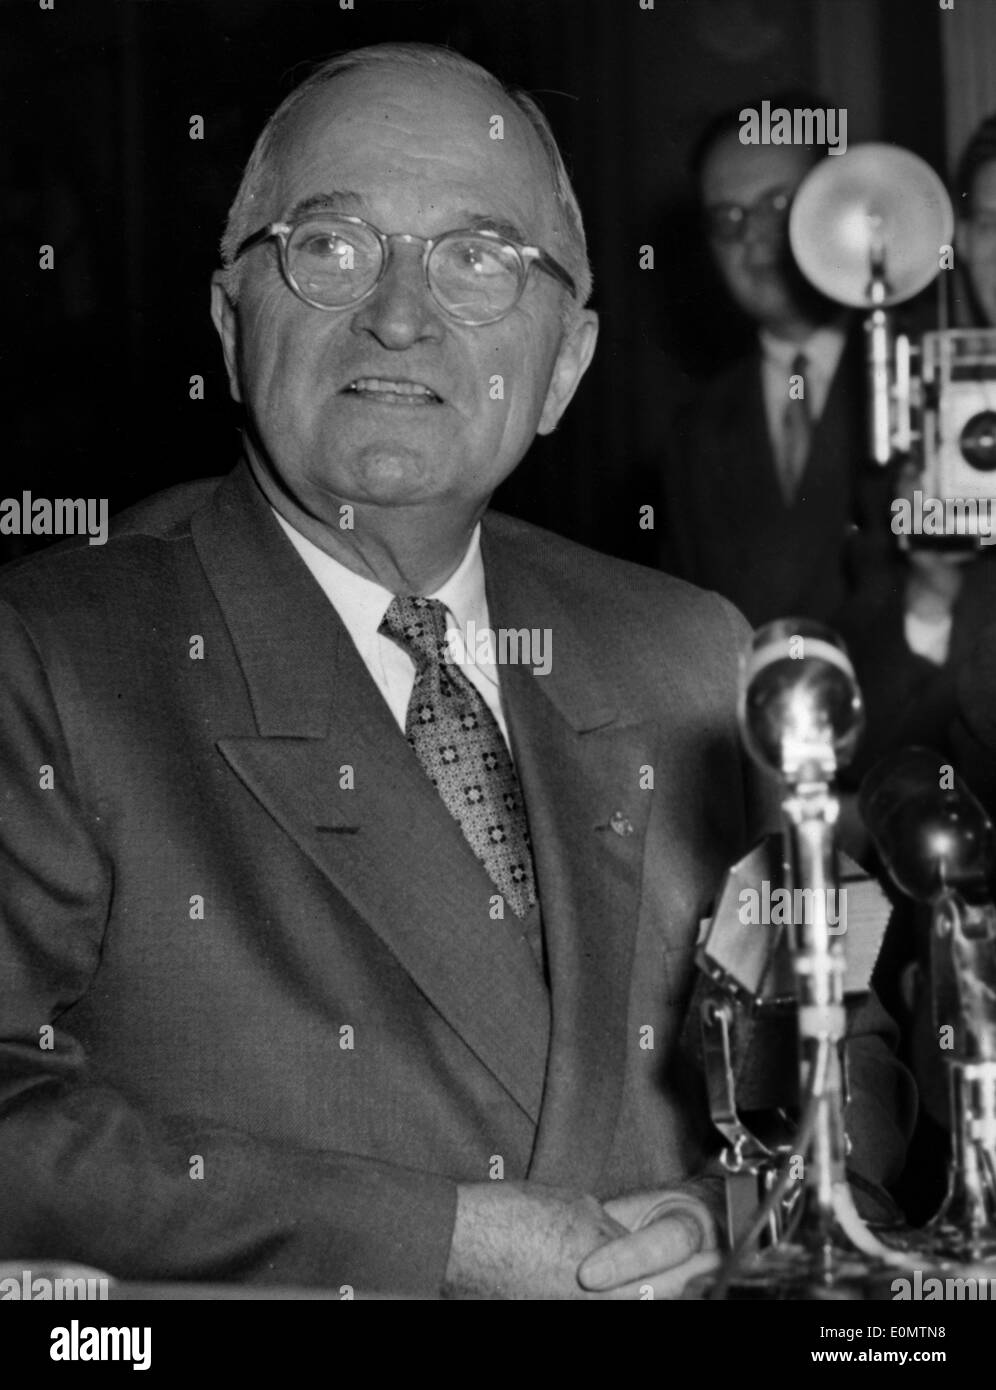 President Harry S. Truman speaking at a press conference - Stock Image